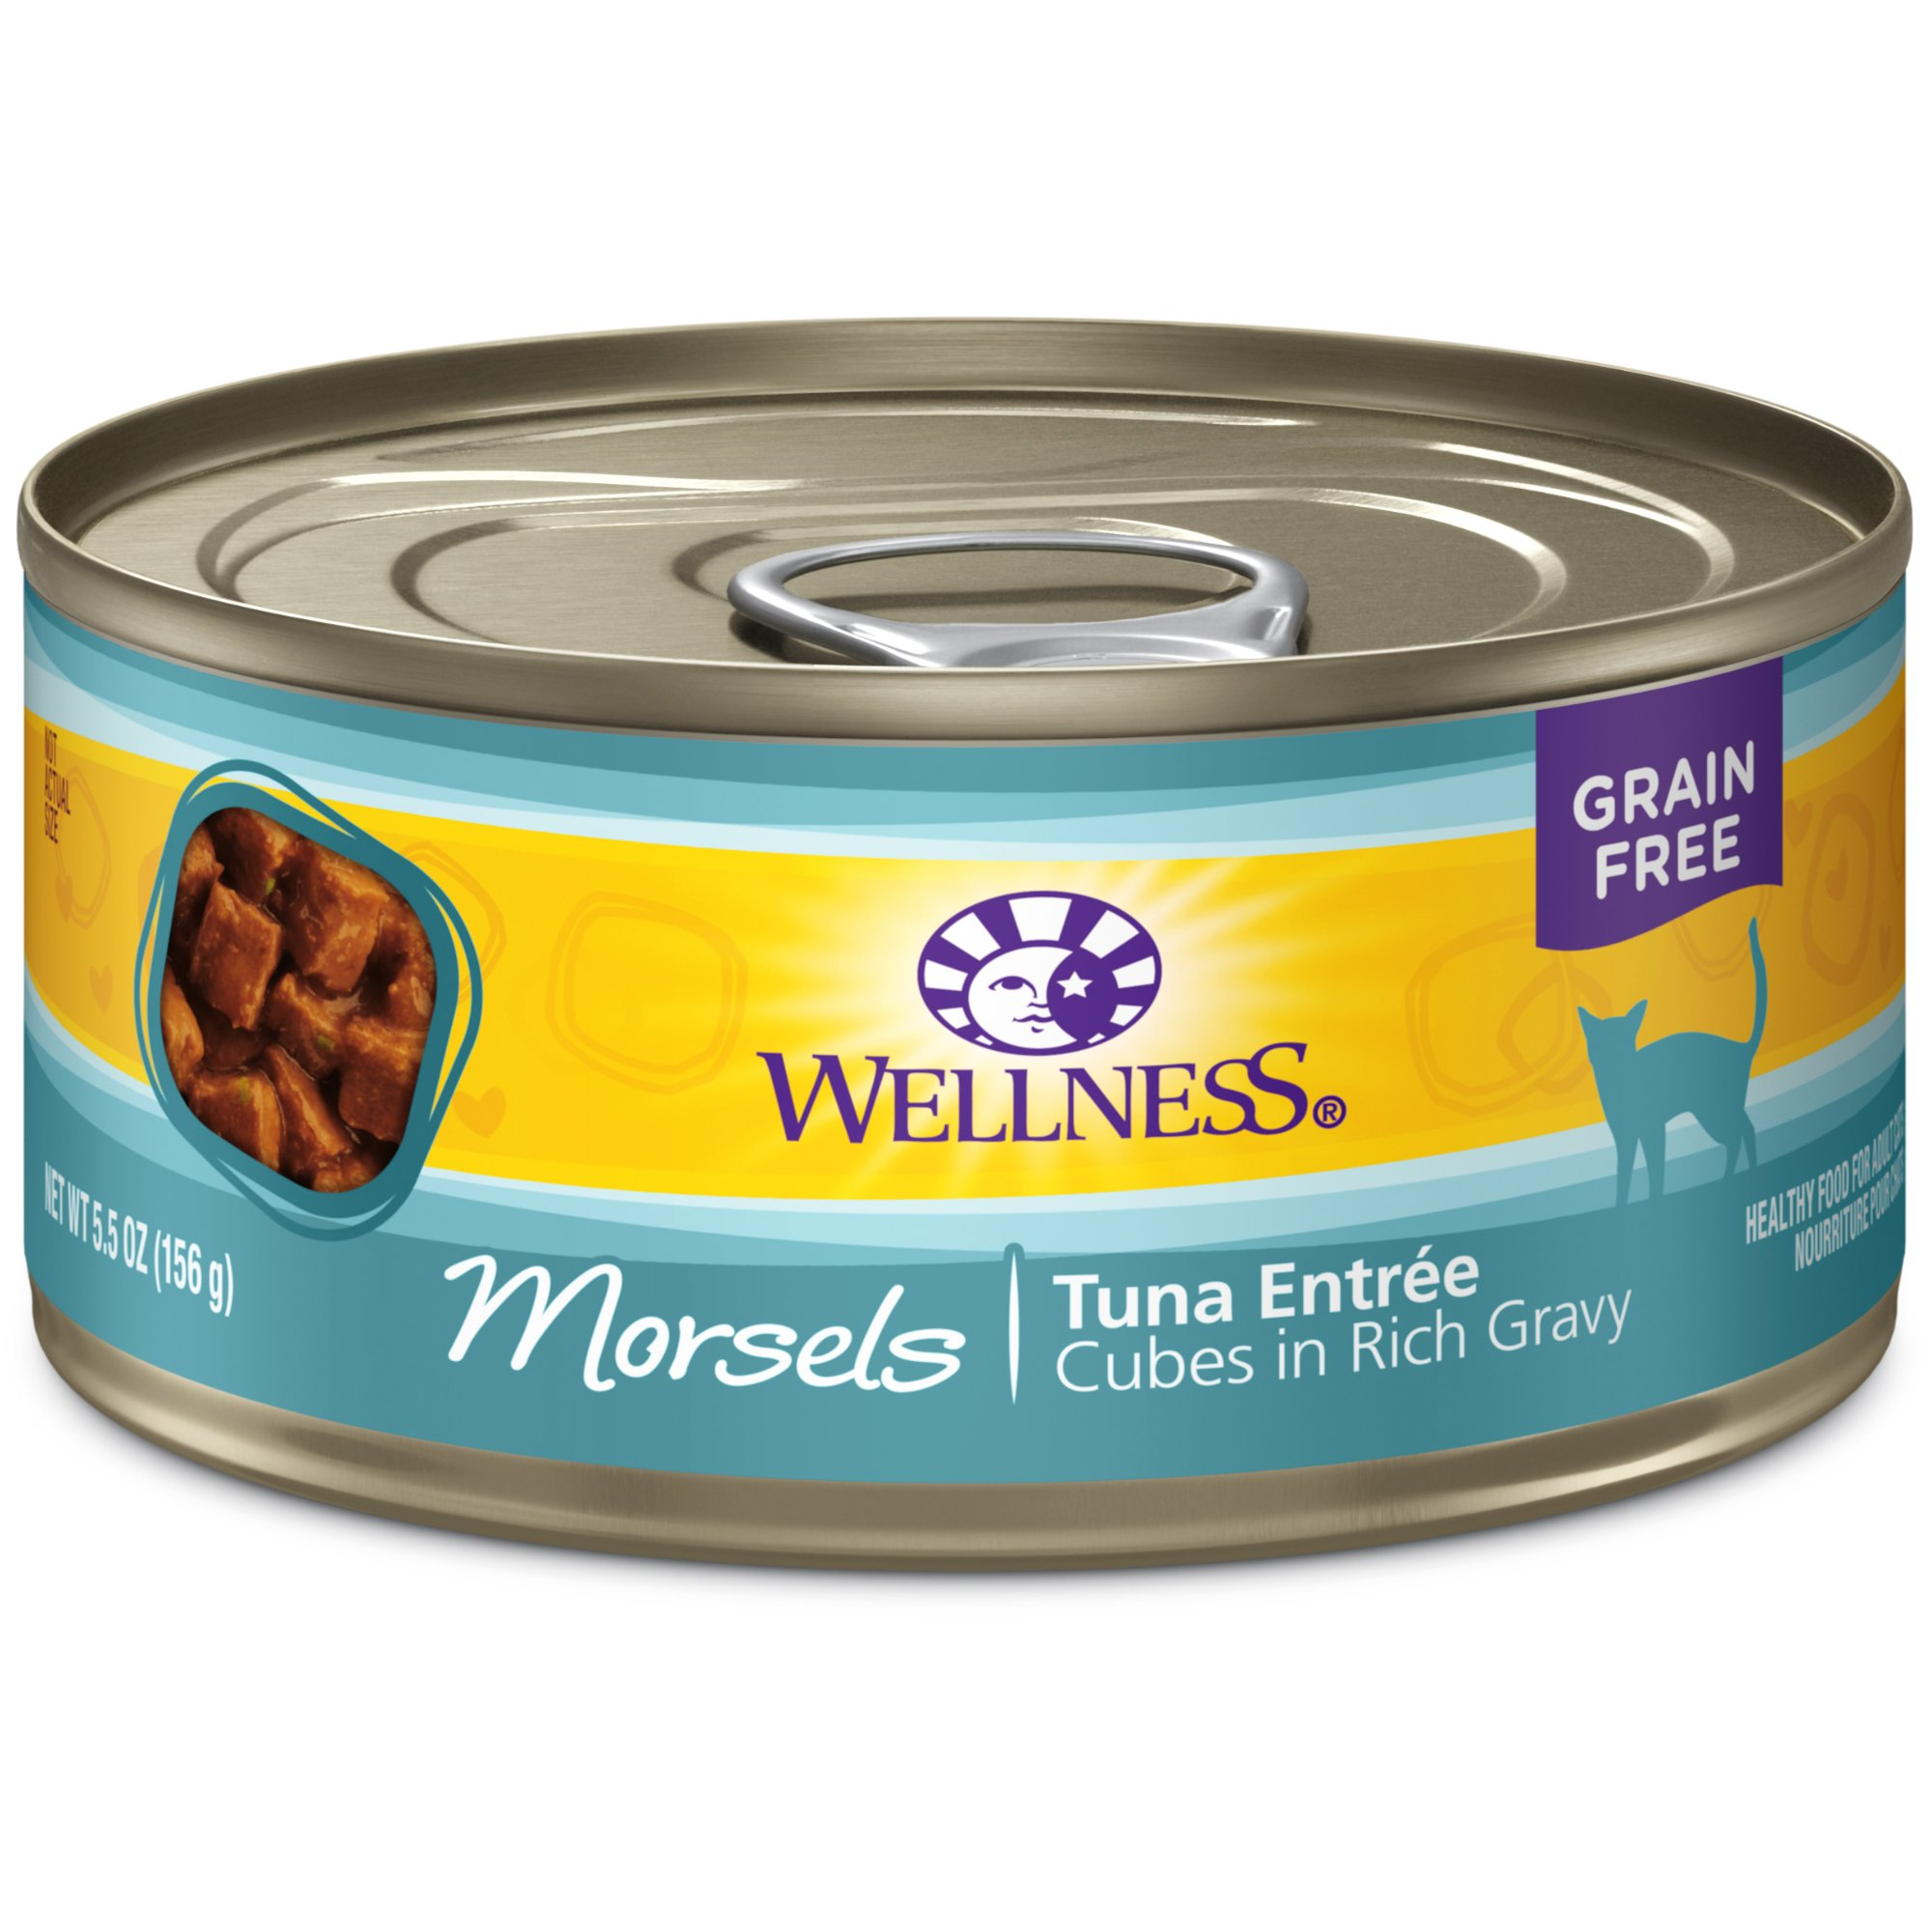 Wellness Complete Health Natural Grain Free Wet Canned Cat Food, Morsels Tuna Entrée, 5.5-Ounce Can (Pack Of 24)